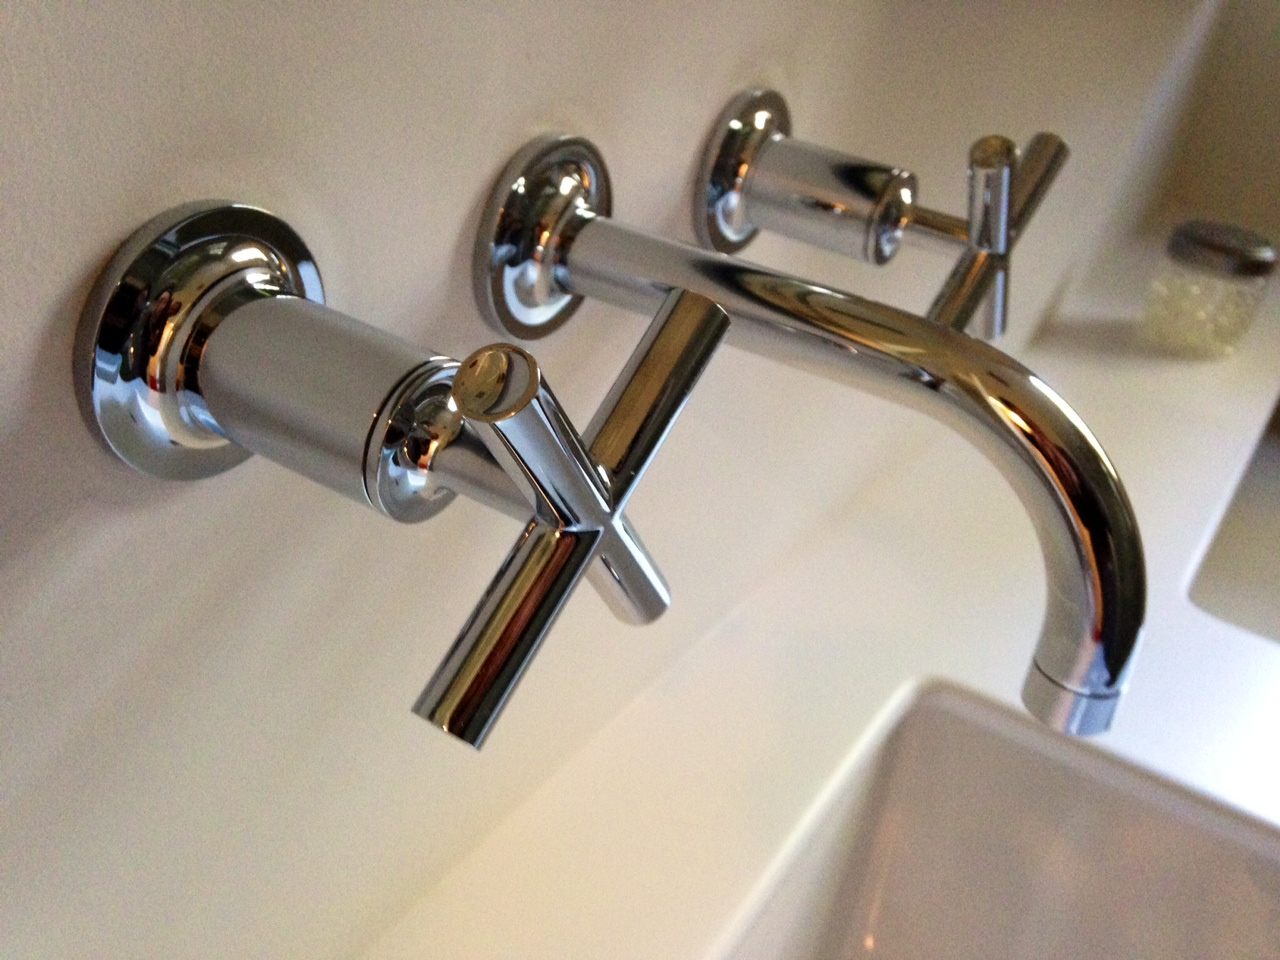 Bayberry Bath Remodel Faucet